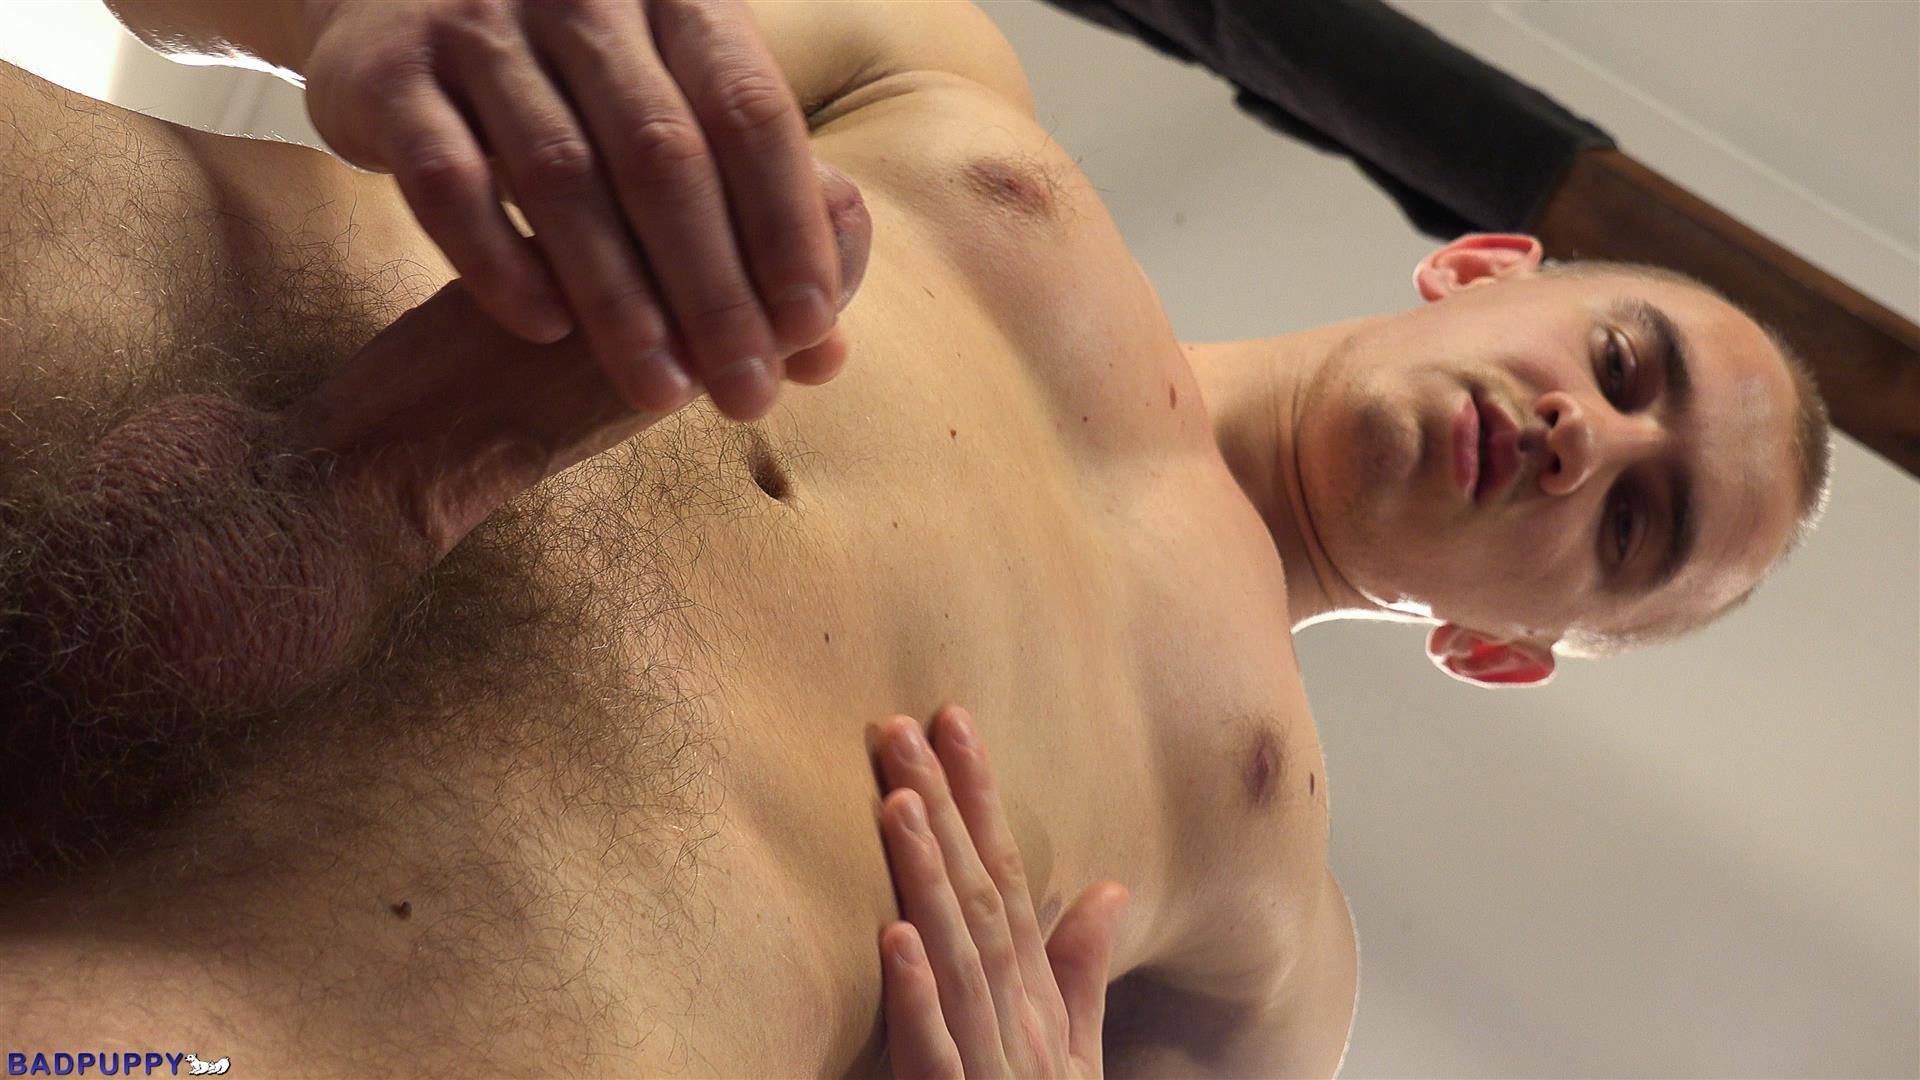 Oleg-Moloda-Badpuppy-Straight-Czech-Jock-With-Big-Uncut-Cock-Amateur-Gay-Porn-09 Straight Czech Muscle Jock Auditions For Gay Porn